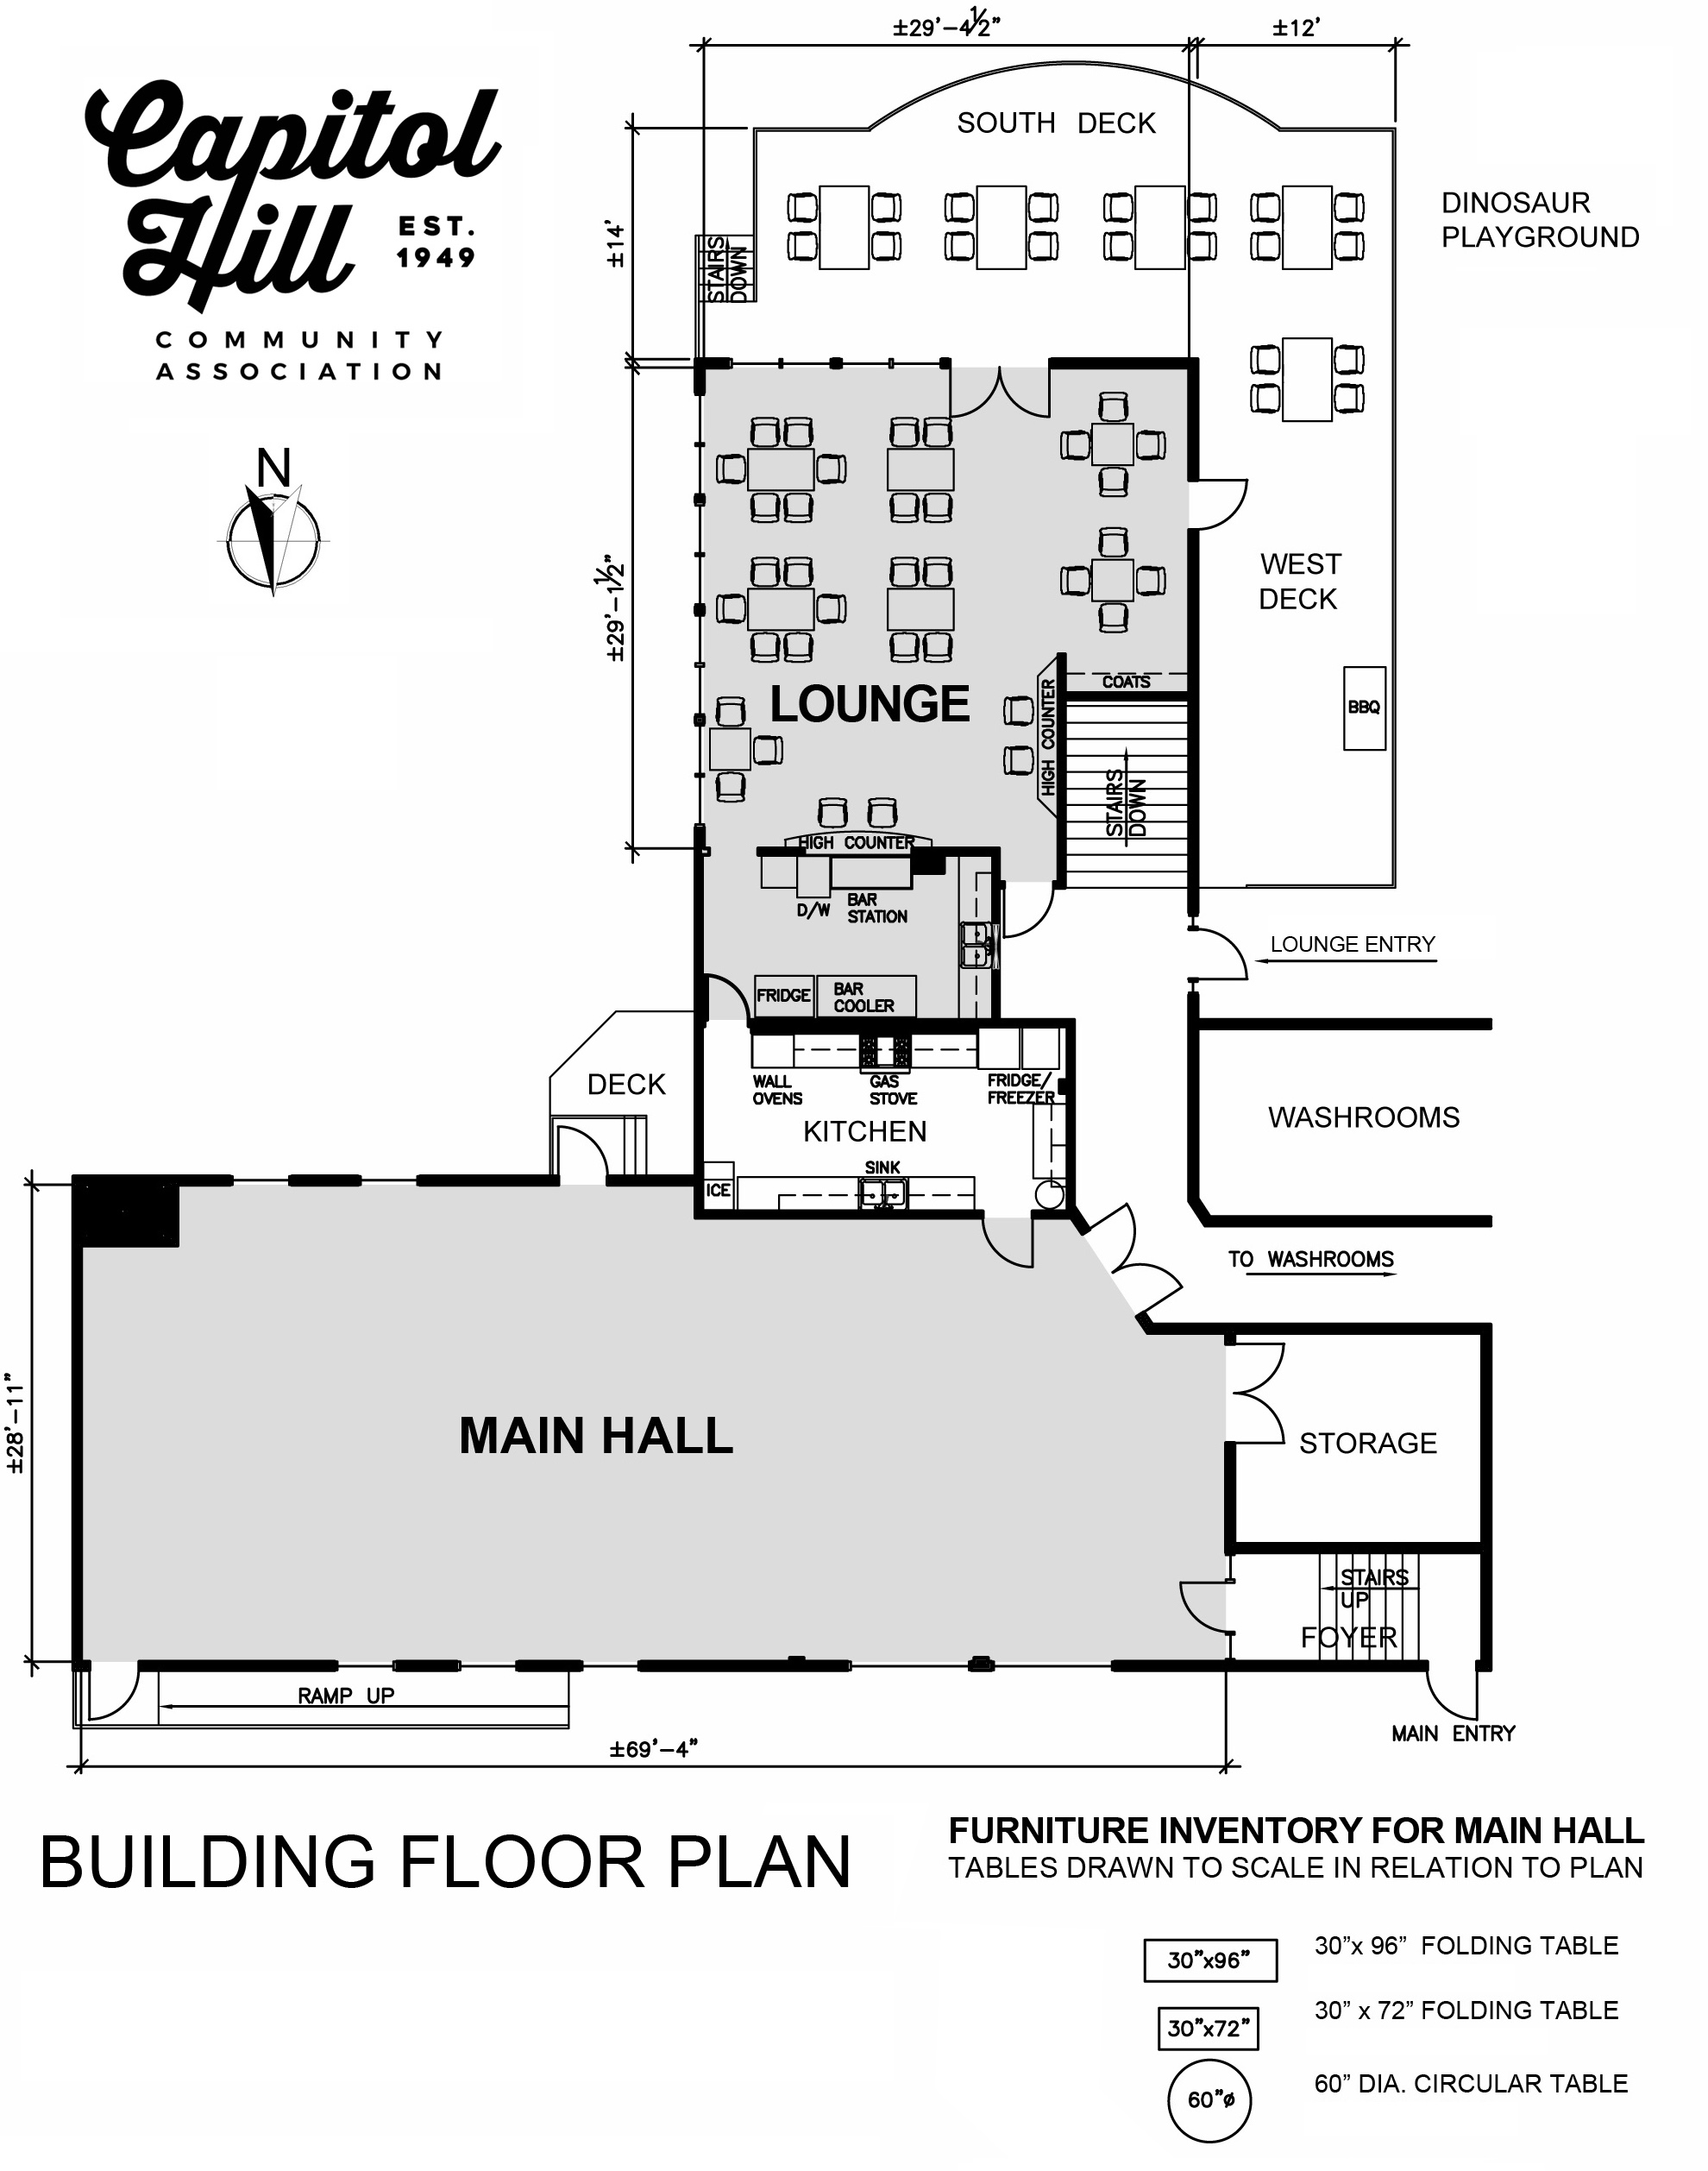 Hall Rental Plan March2014.jpg